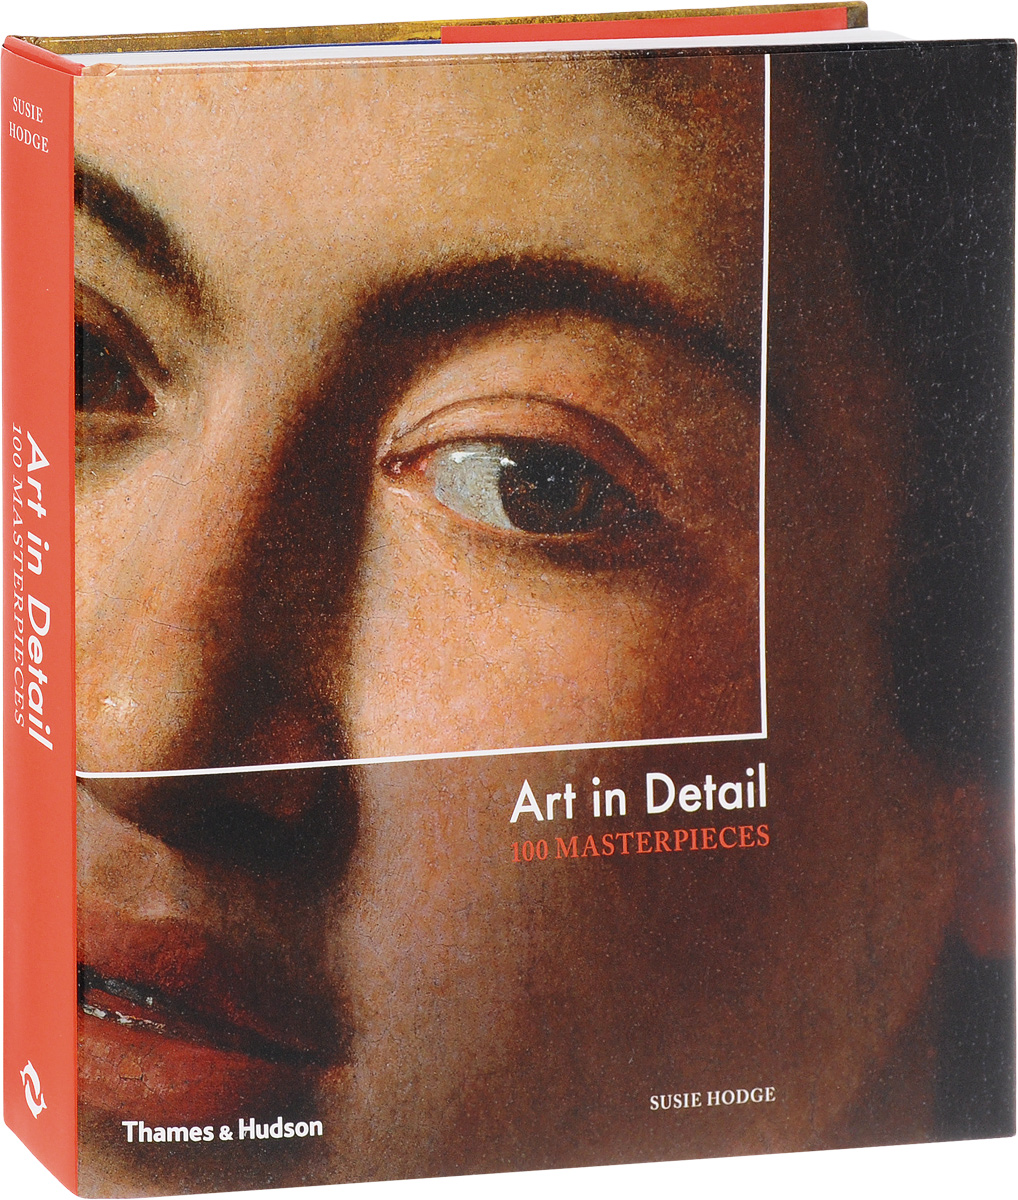 Art in Detail: 100 Masterpieces business and ethics in a country with political socio economic crisis